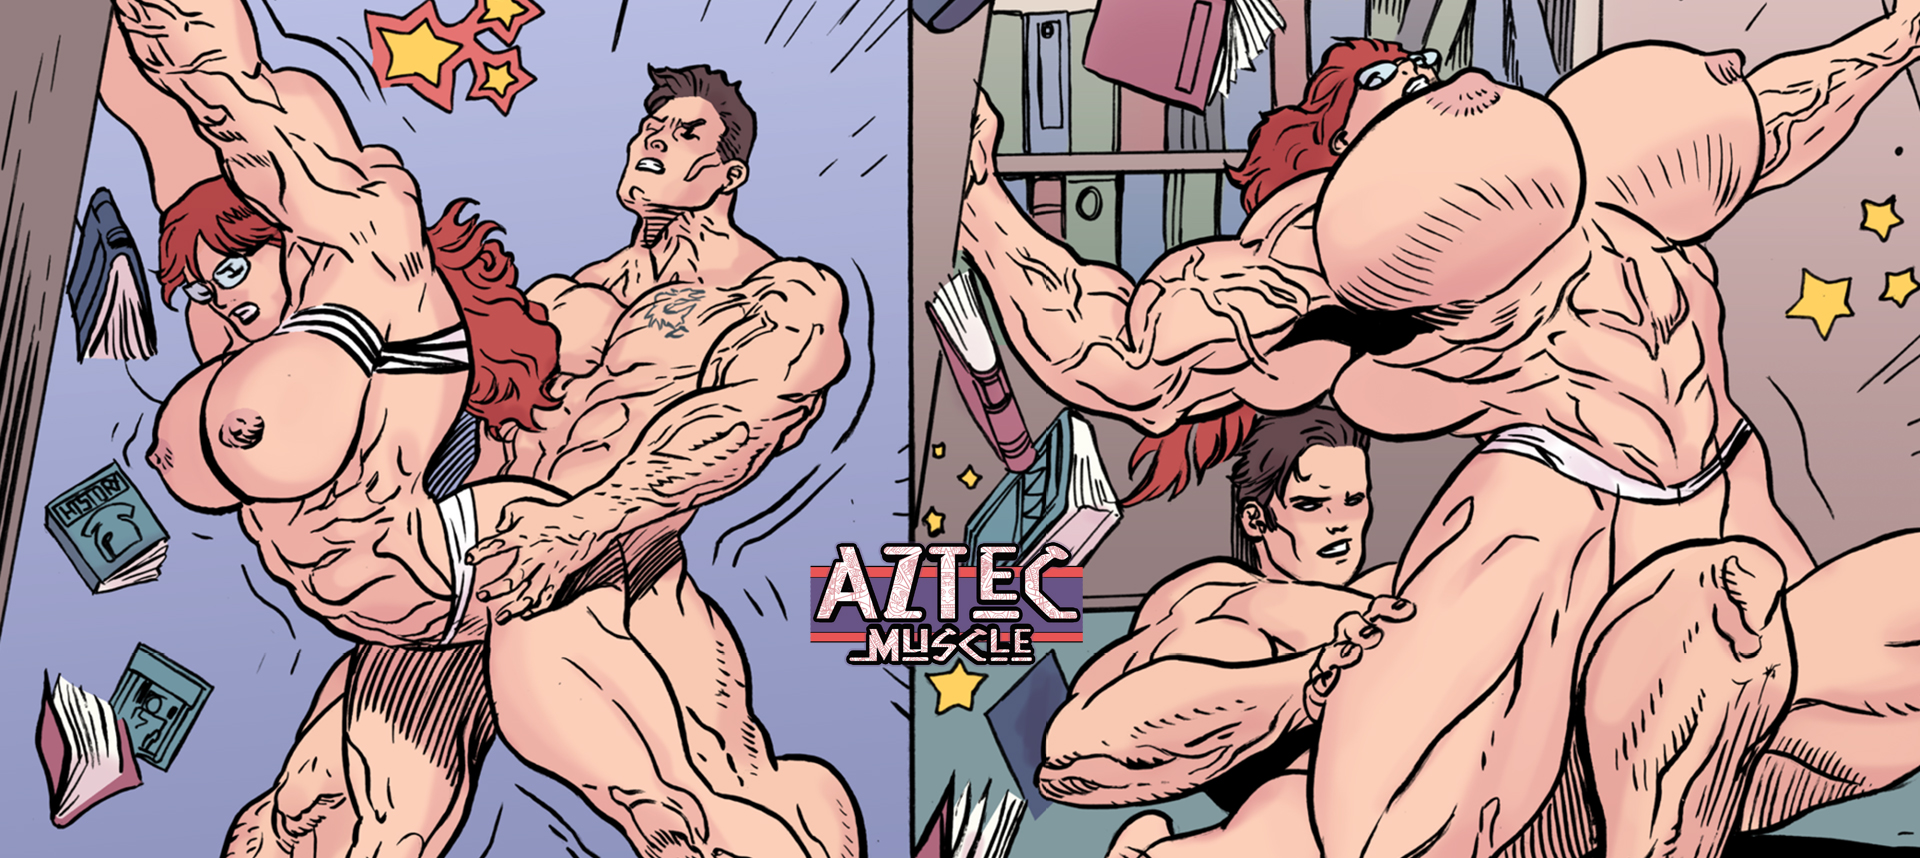 Aztec-Muscle_03-SLIDE_03